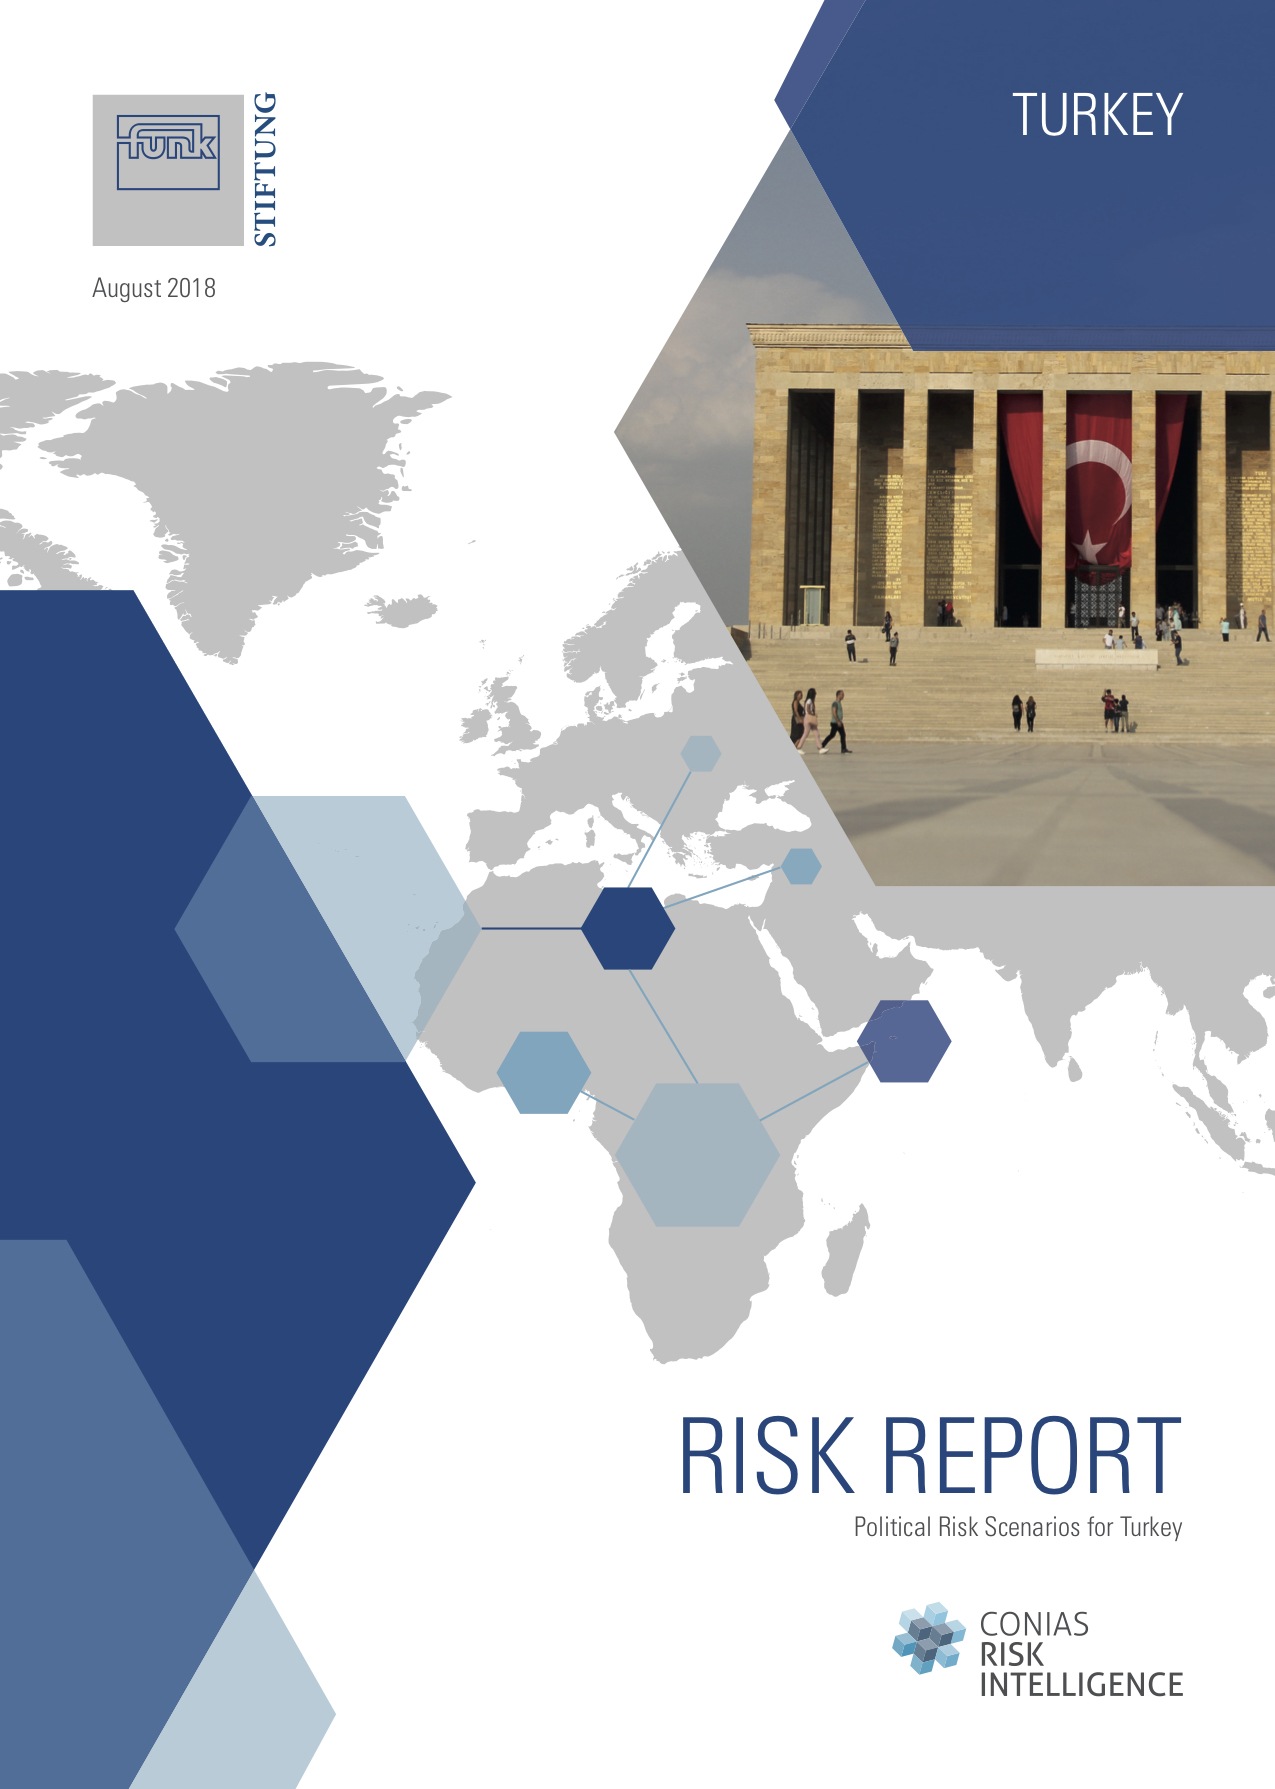 Risk Report Turkey